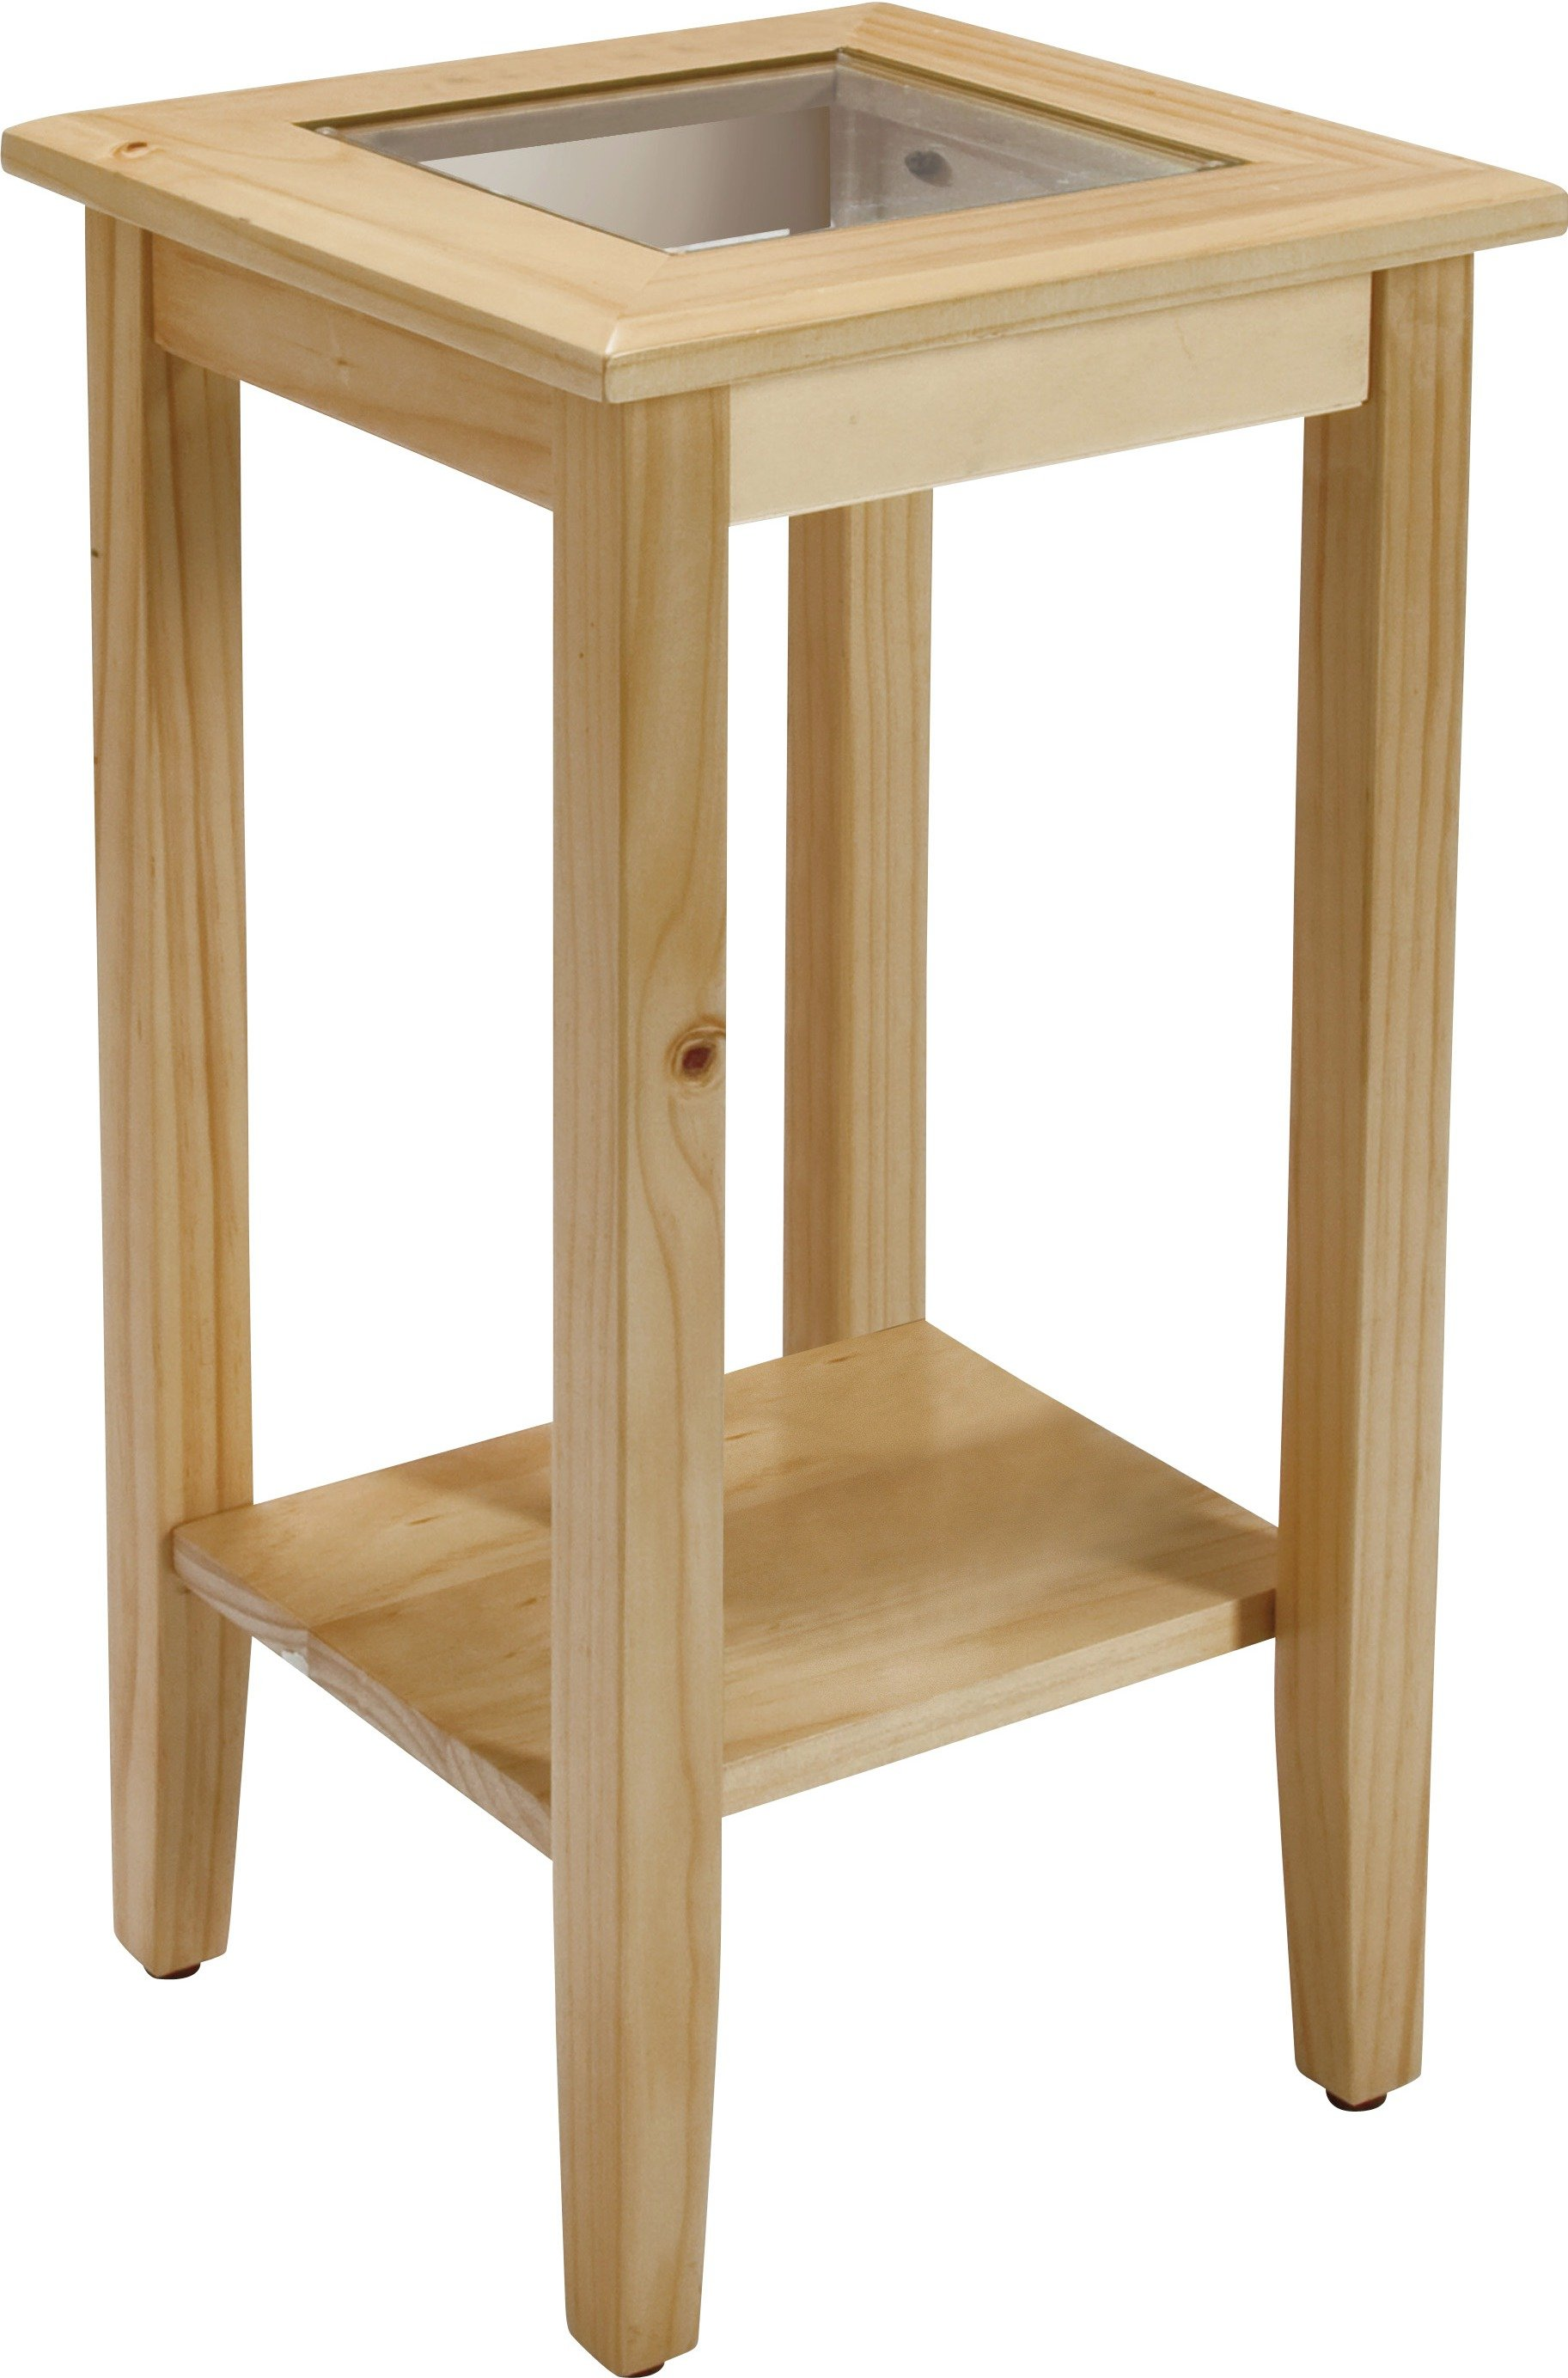 Argos Home 1 Shelf Solid Pine and Glass Top Telephone Table review